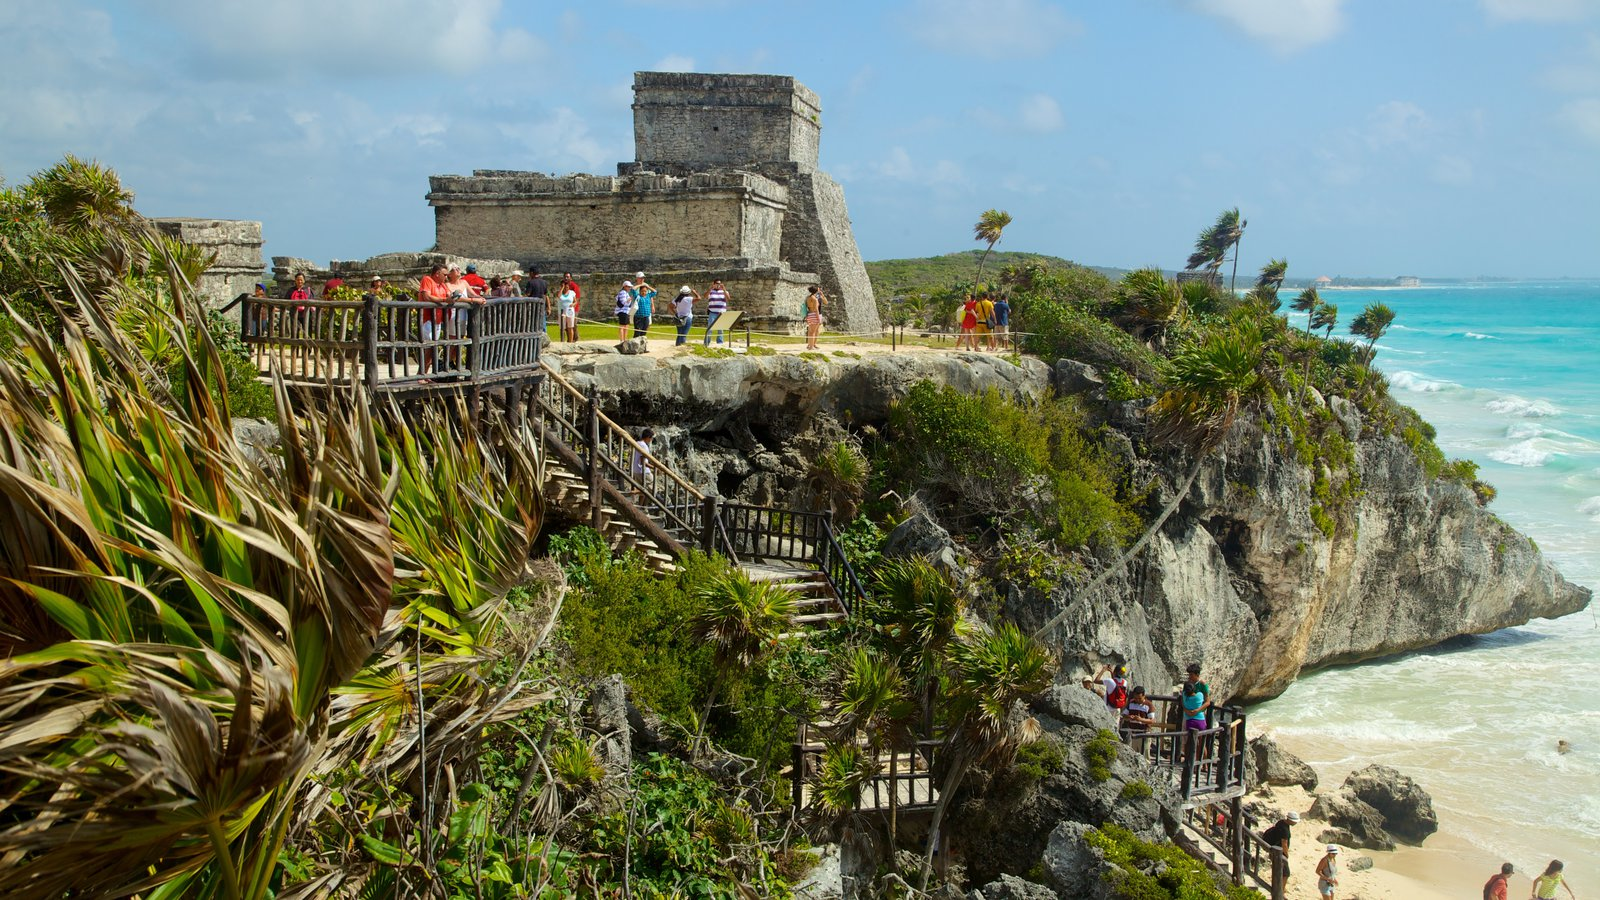 Tulum Mayan Ruins which includes a ruin, general coastal views and rocky coastline